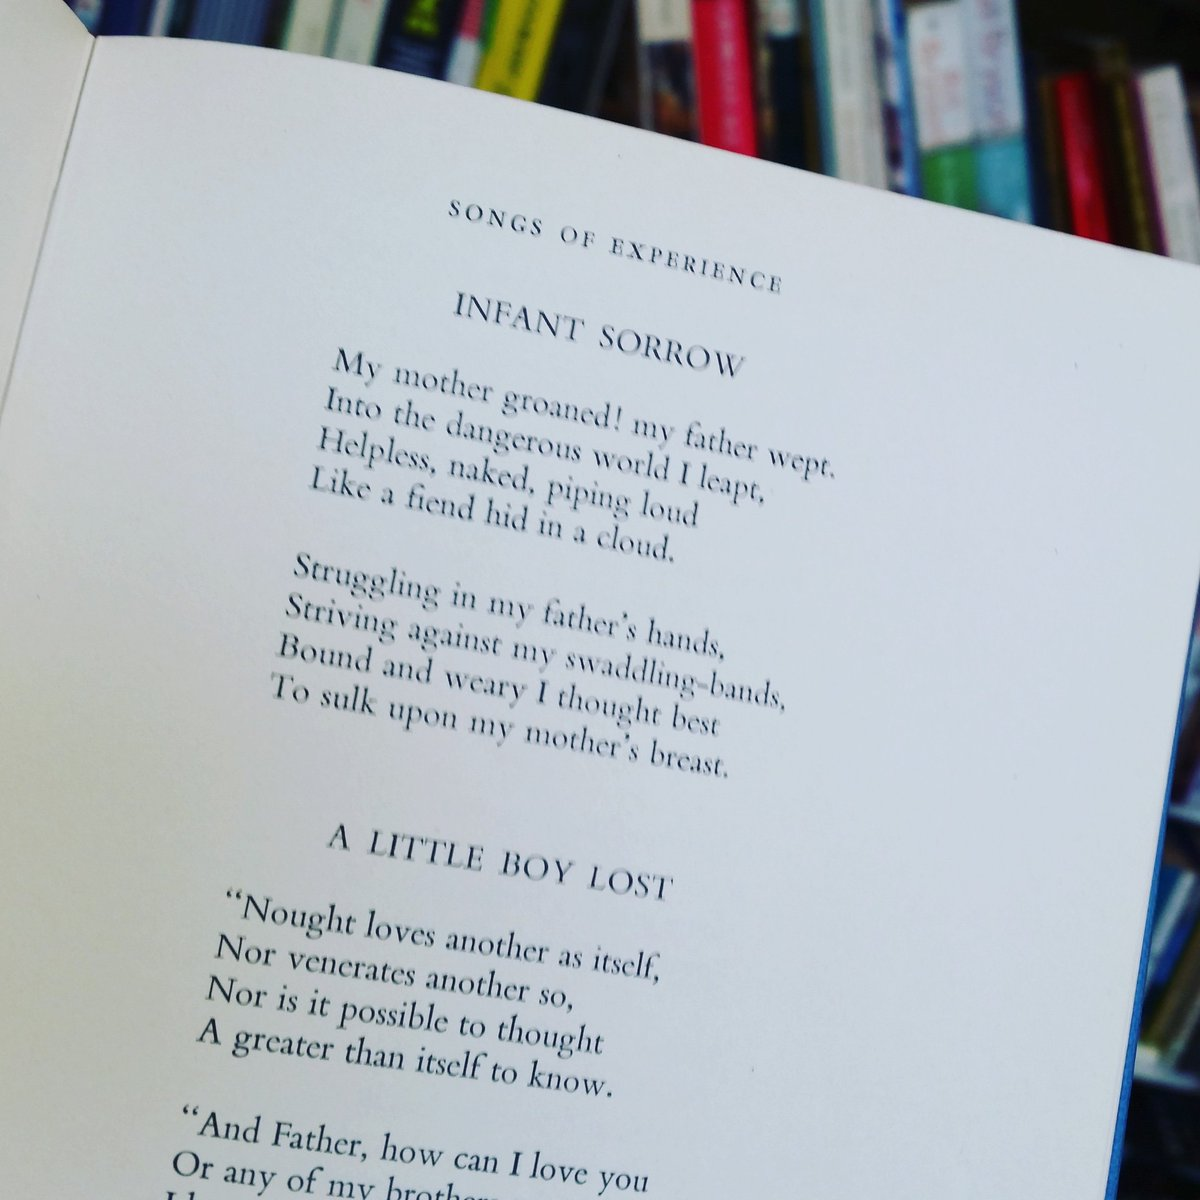 the little boy lost poem